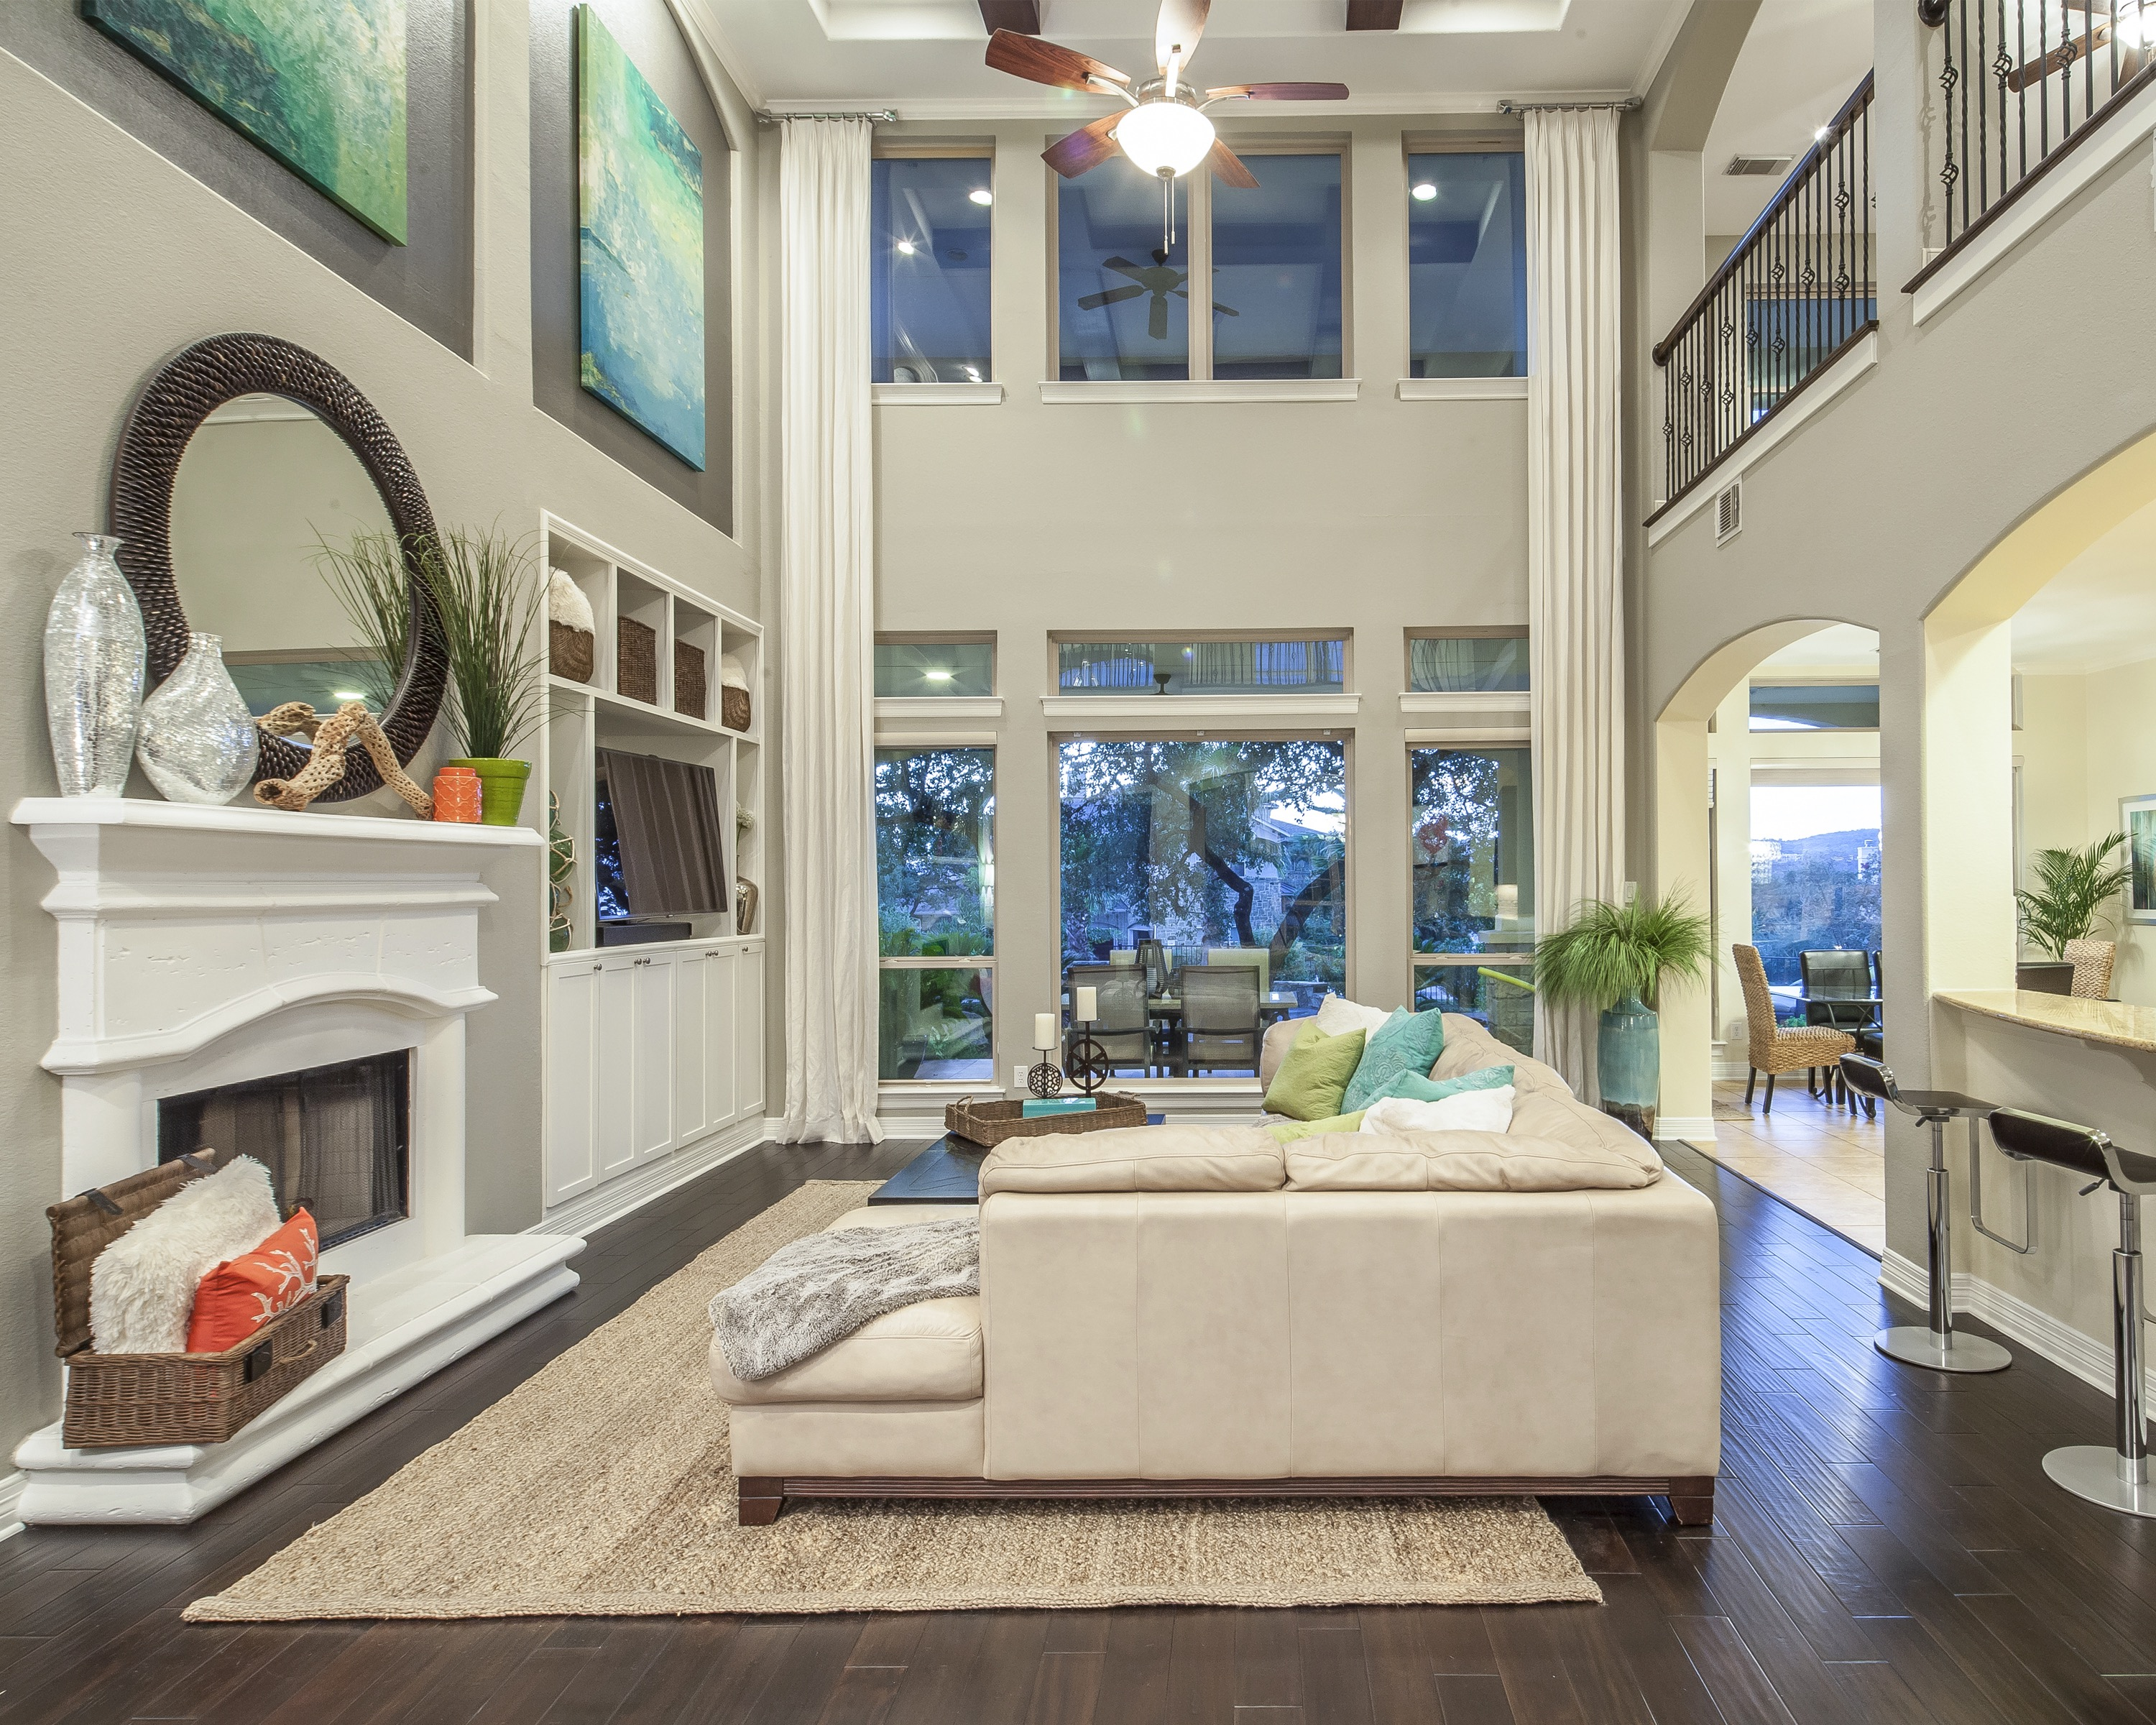 White Color Scheme For Coastal Living Room With High Ceilings (Image 20 of 20)